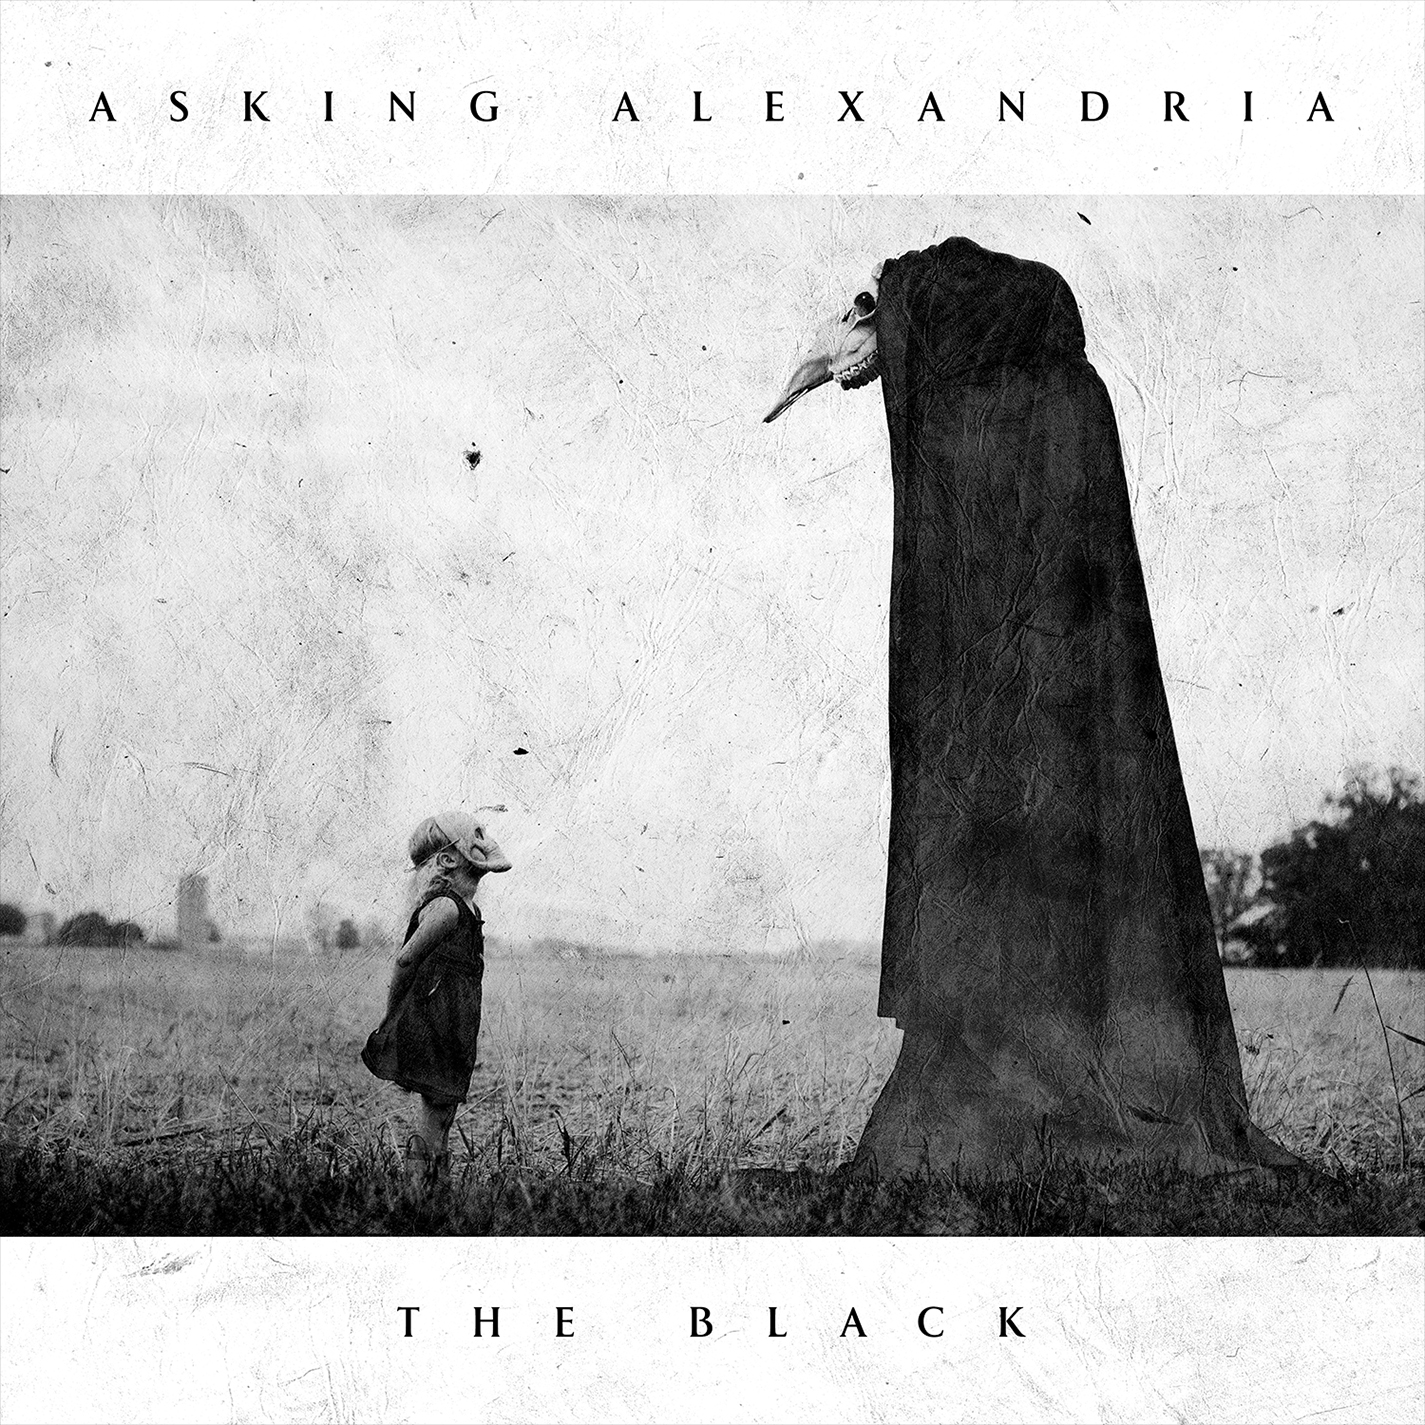 ASKING ALEXANDRIA - THE BLACK 1425.jpg.jpeg